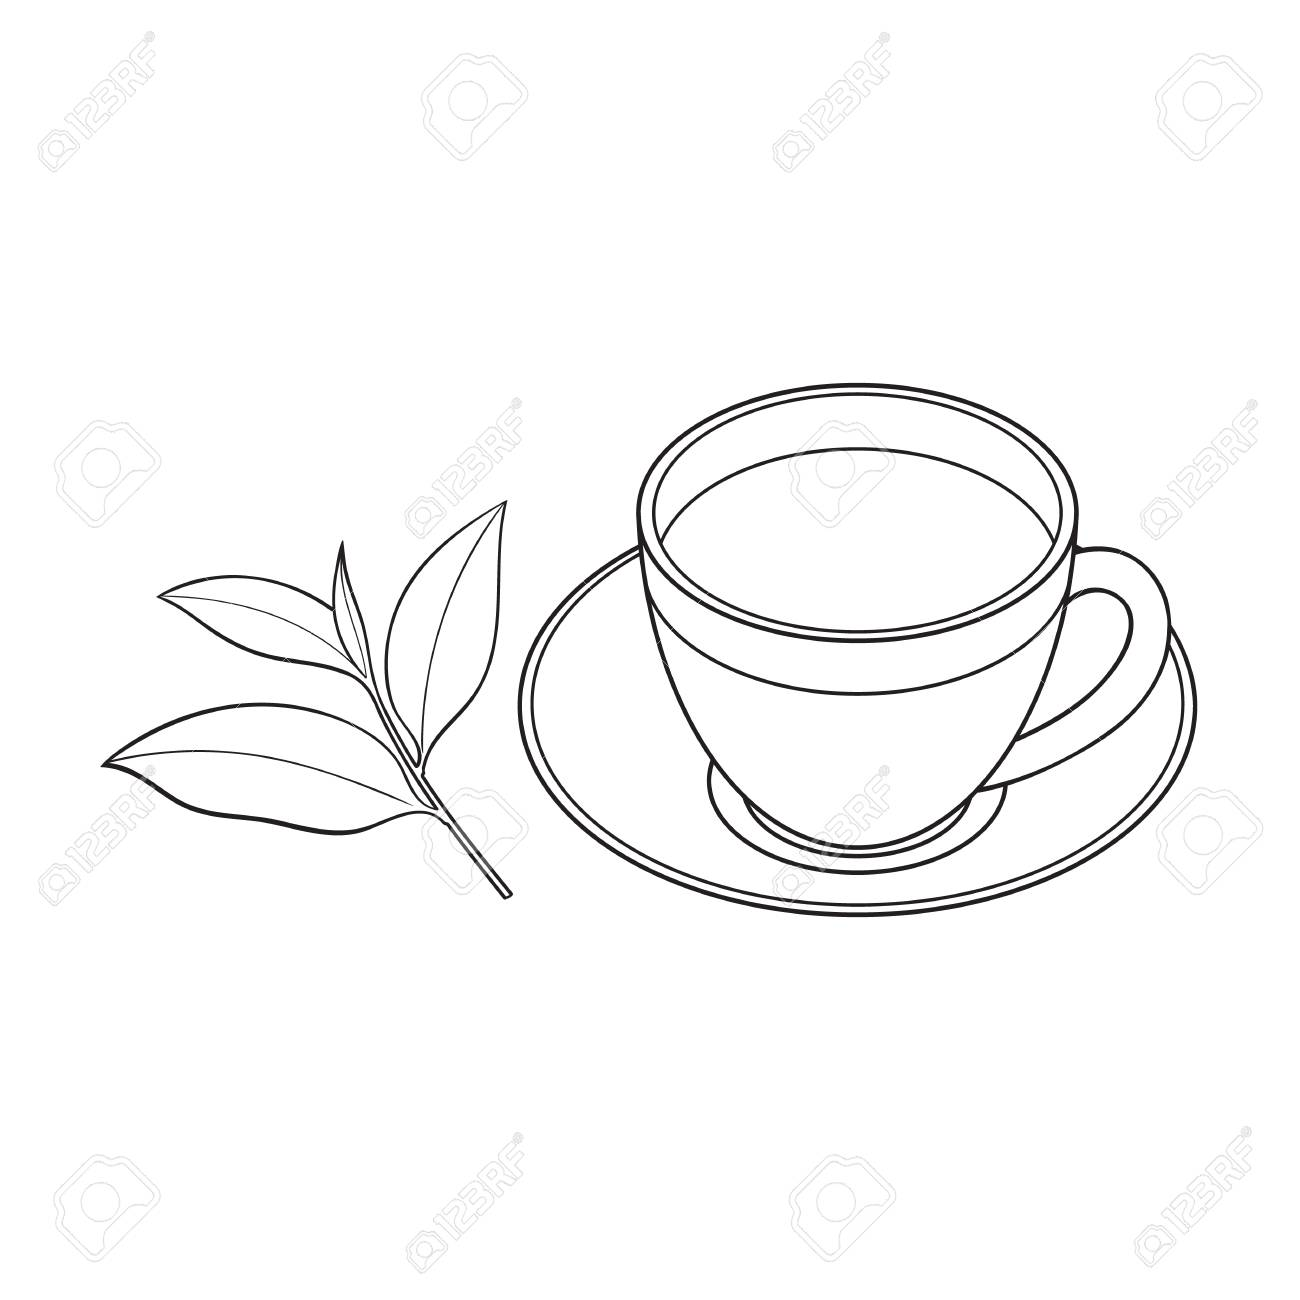 Transparent Glass Cup Saucer And Fresh Tea Leaf Sketch Vector Royalty Free Cliparts Vectors And Stock Illustration Image 84777746